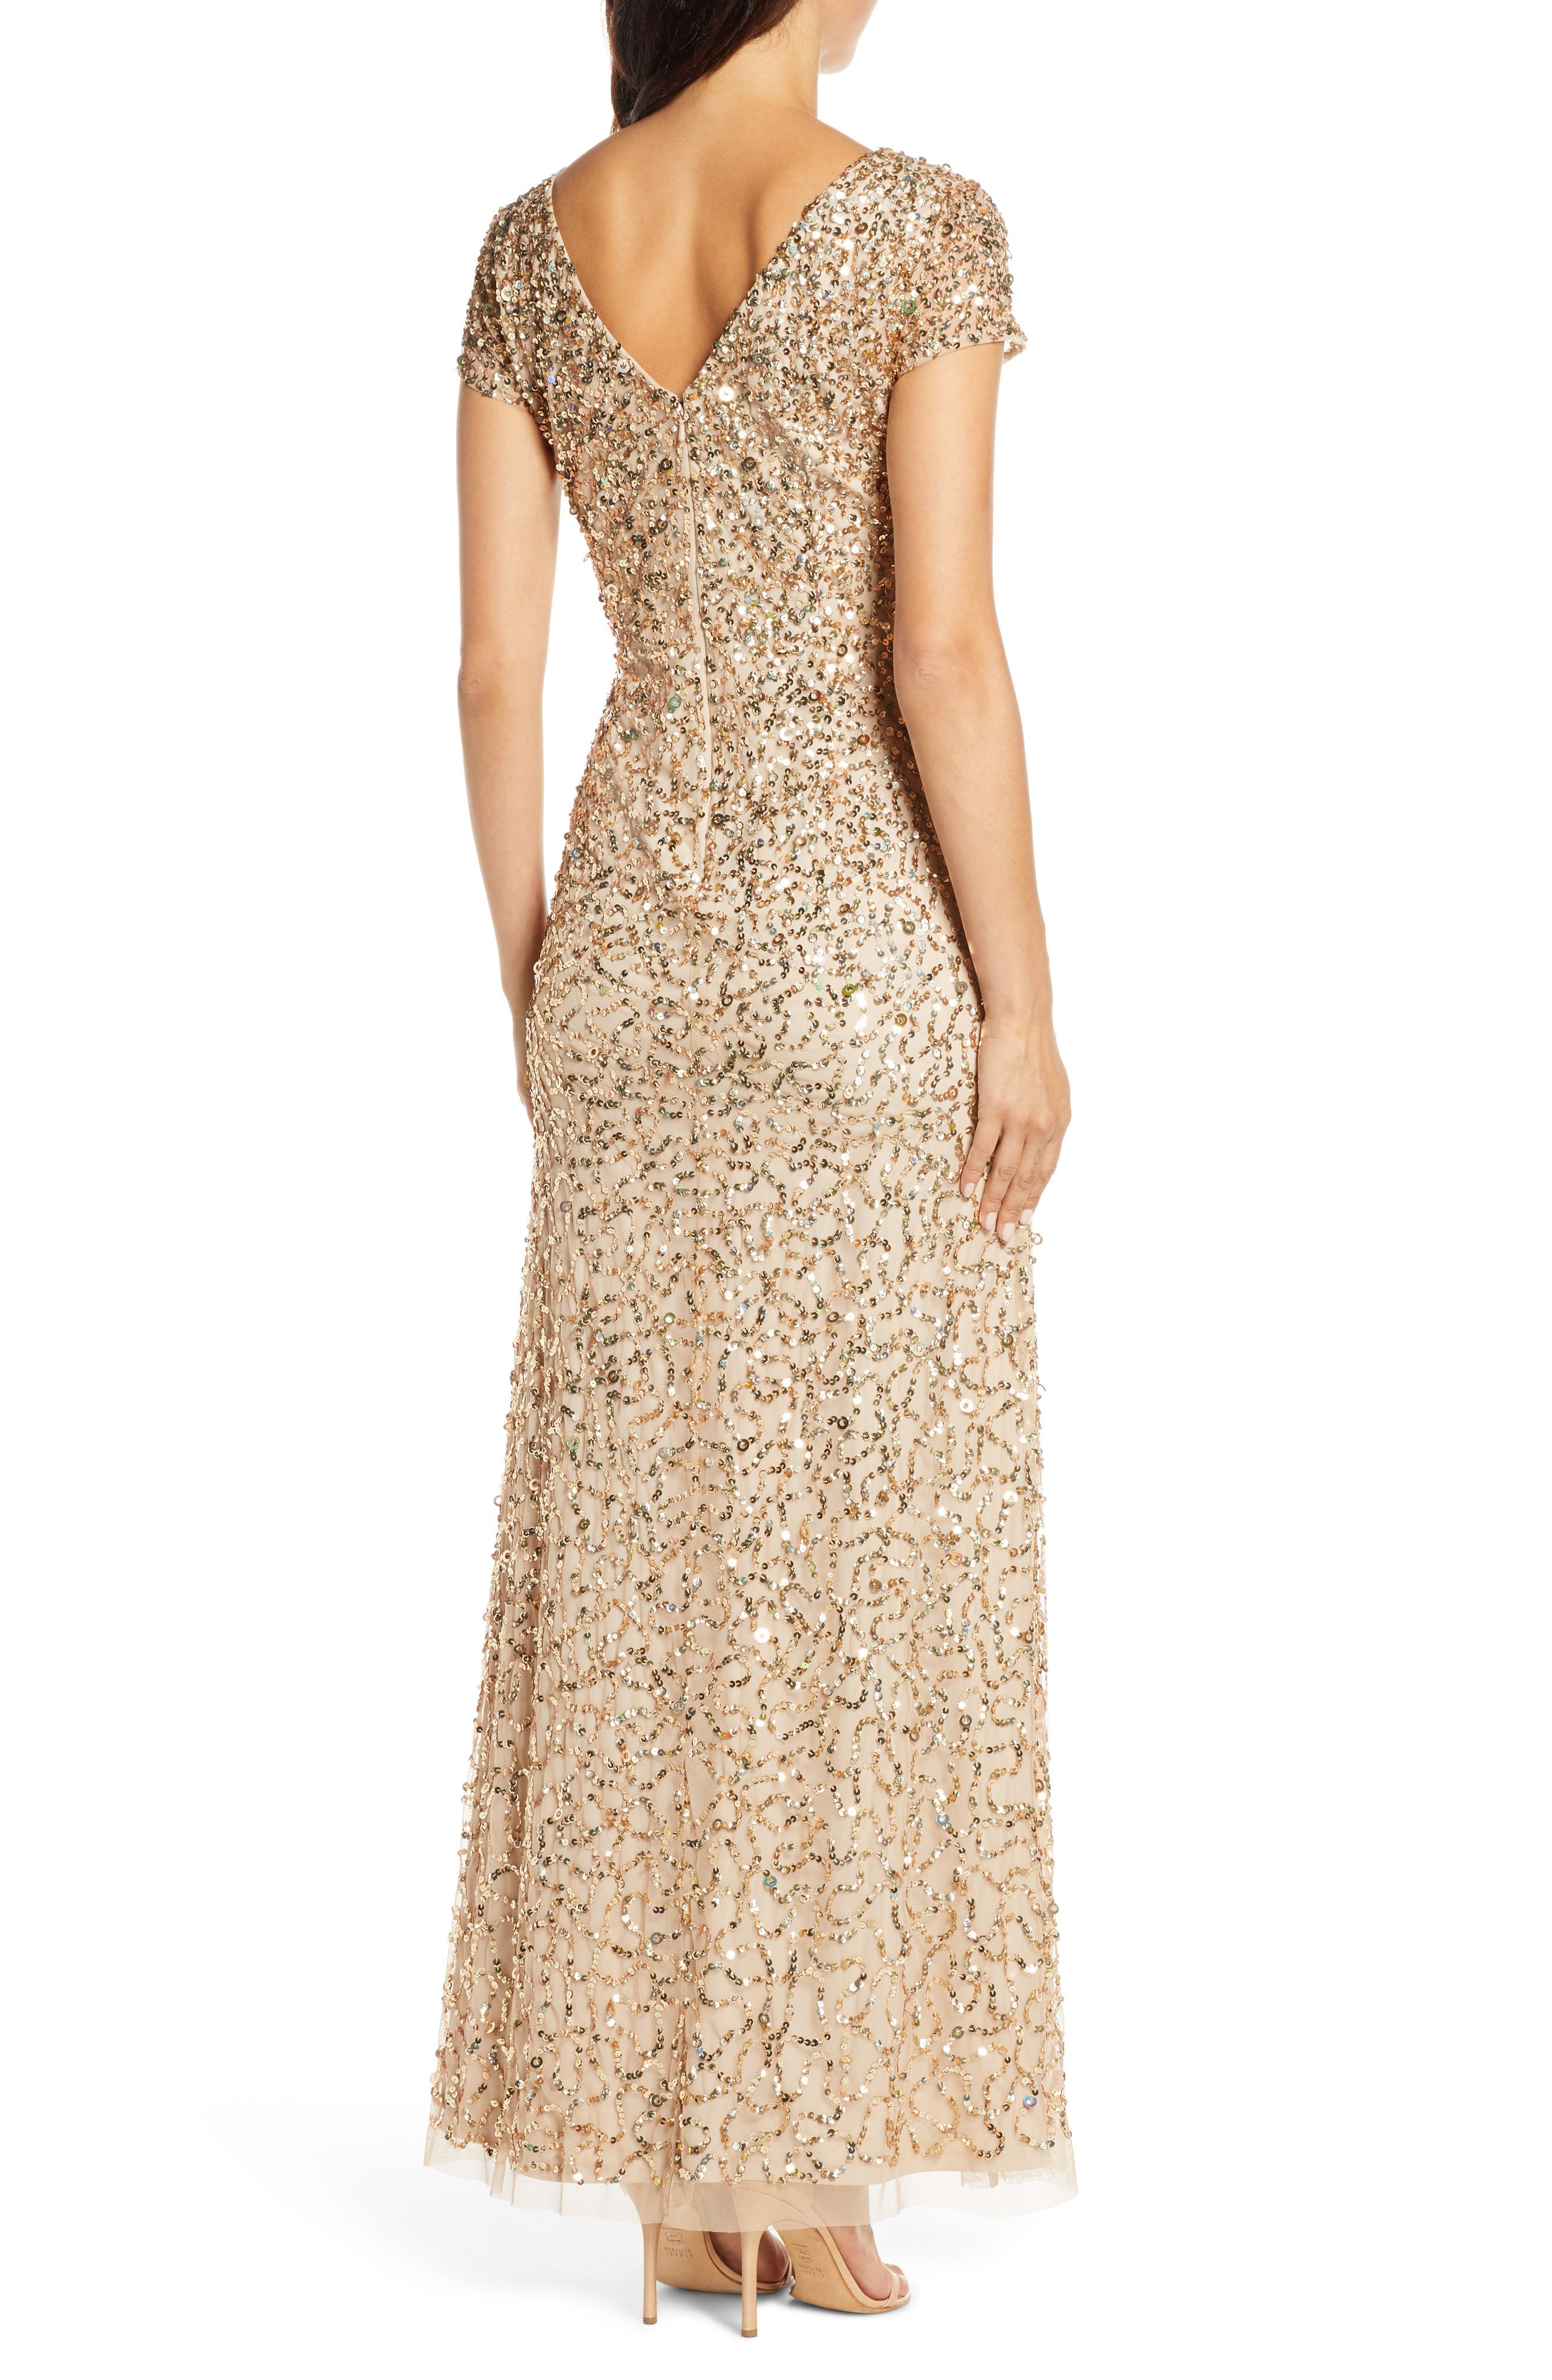 2aeedcc0ad53 Women's Adrianna Papell Dresses | Nordstrom